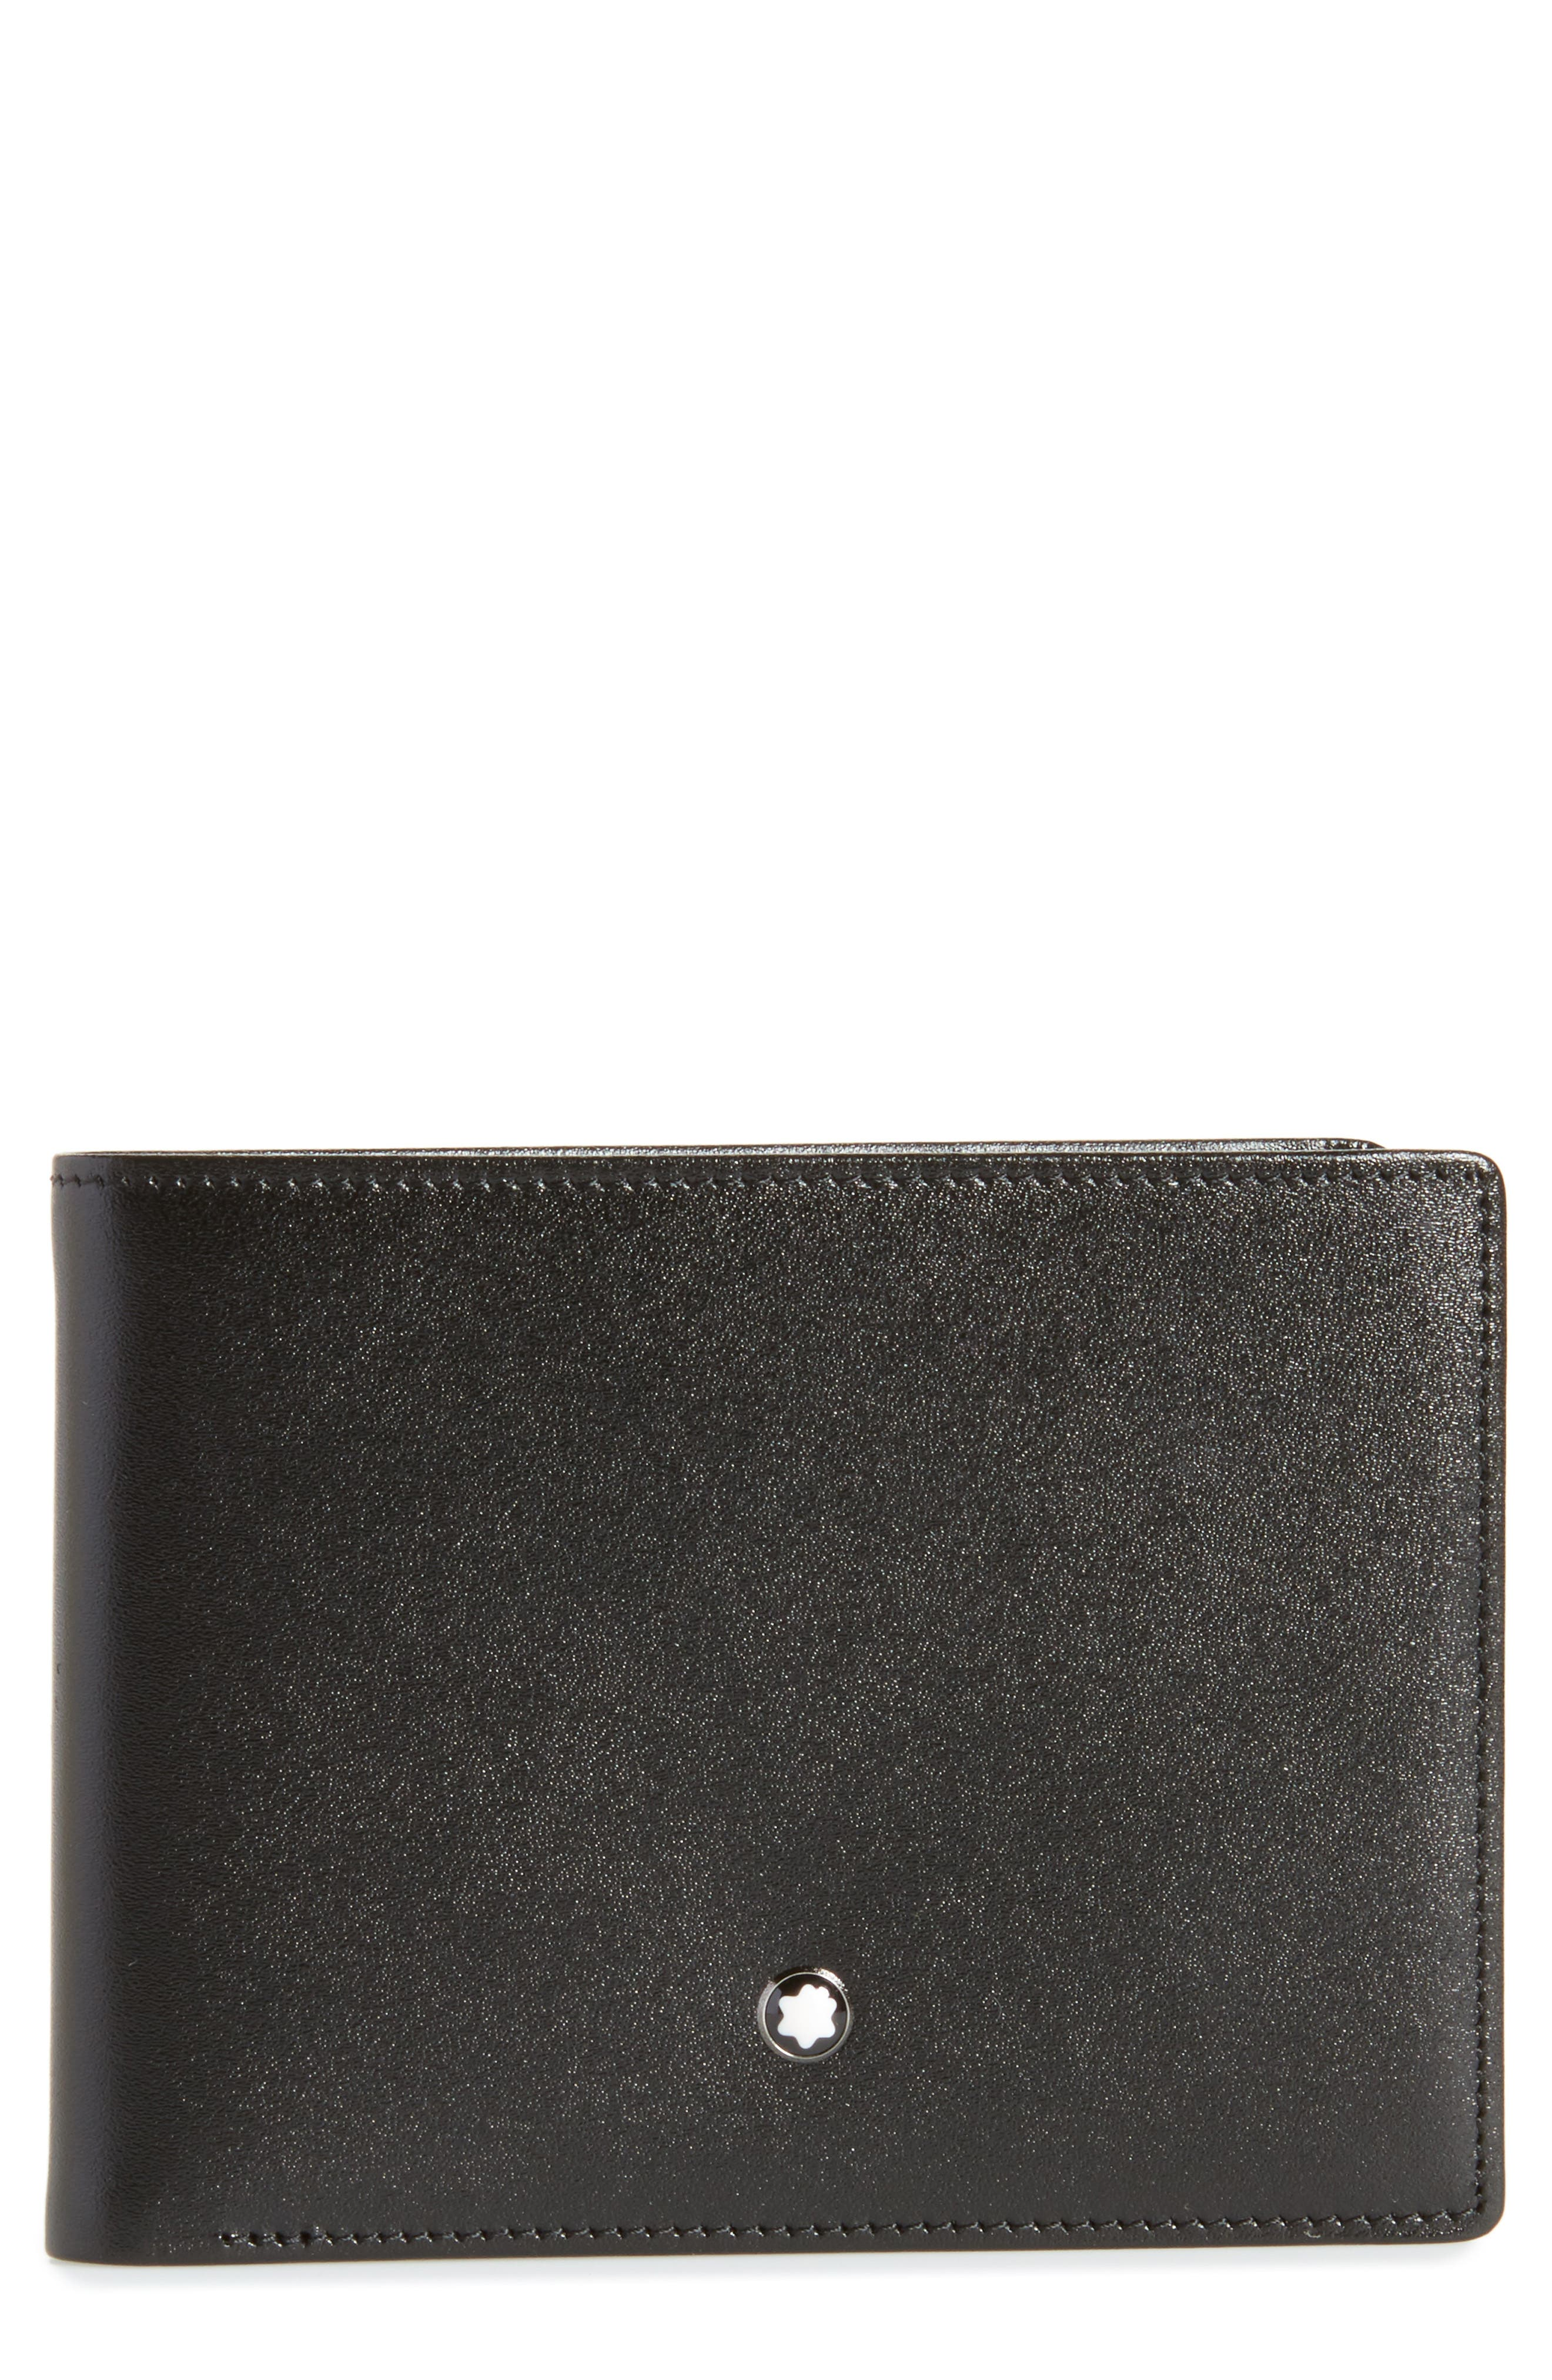 Bifold Leather Wallet,                             Main thumbnail 1, color,                             No Color